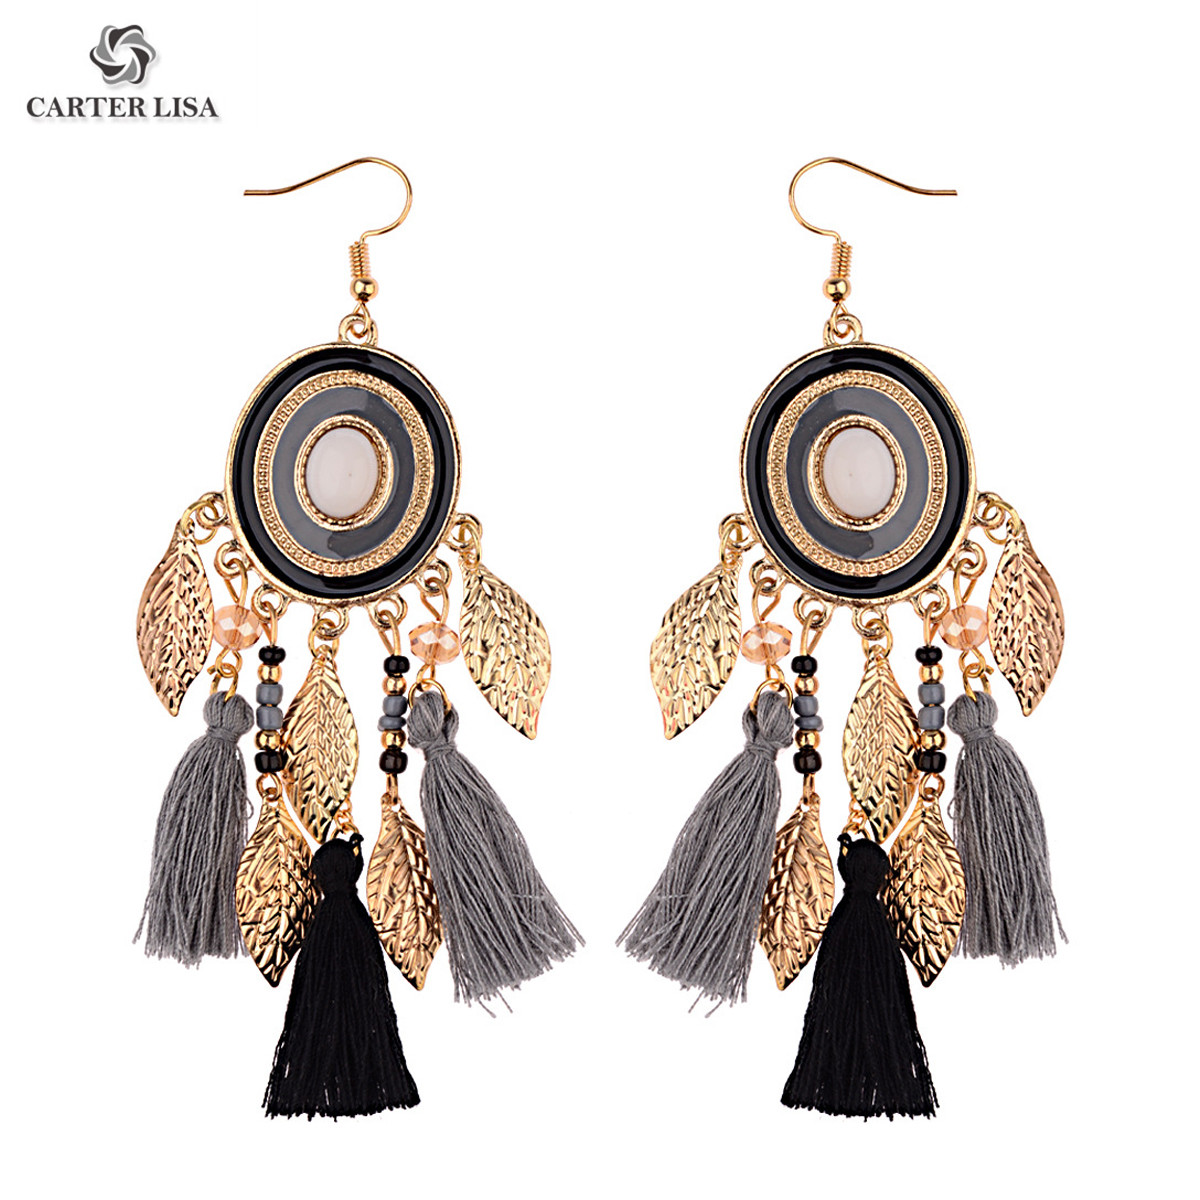 CARTER LISA Colorful Bohemian Statement Leaf Tassel Earrings Jewelry Wholesale Vintage Ethnic Crystal Long Earrings Oorbellen